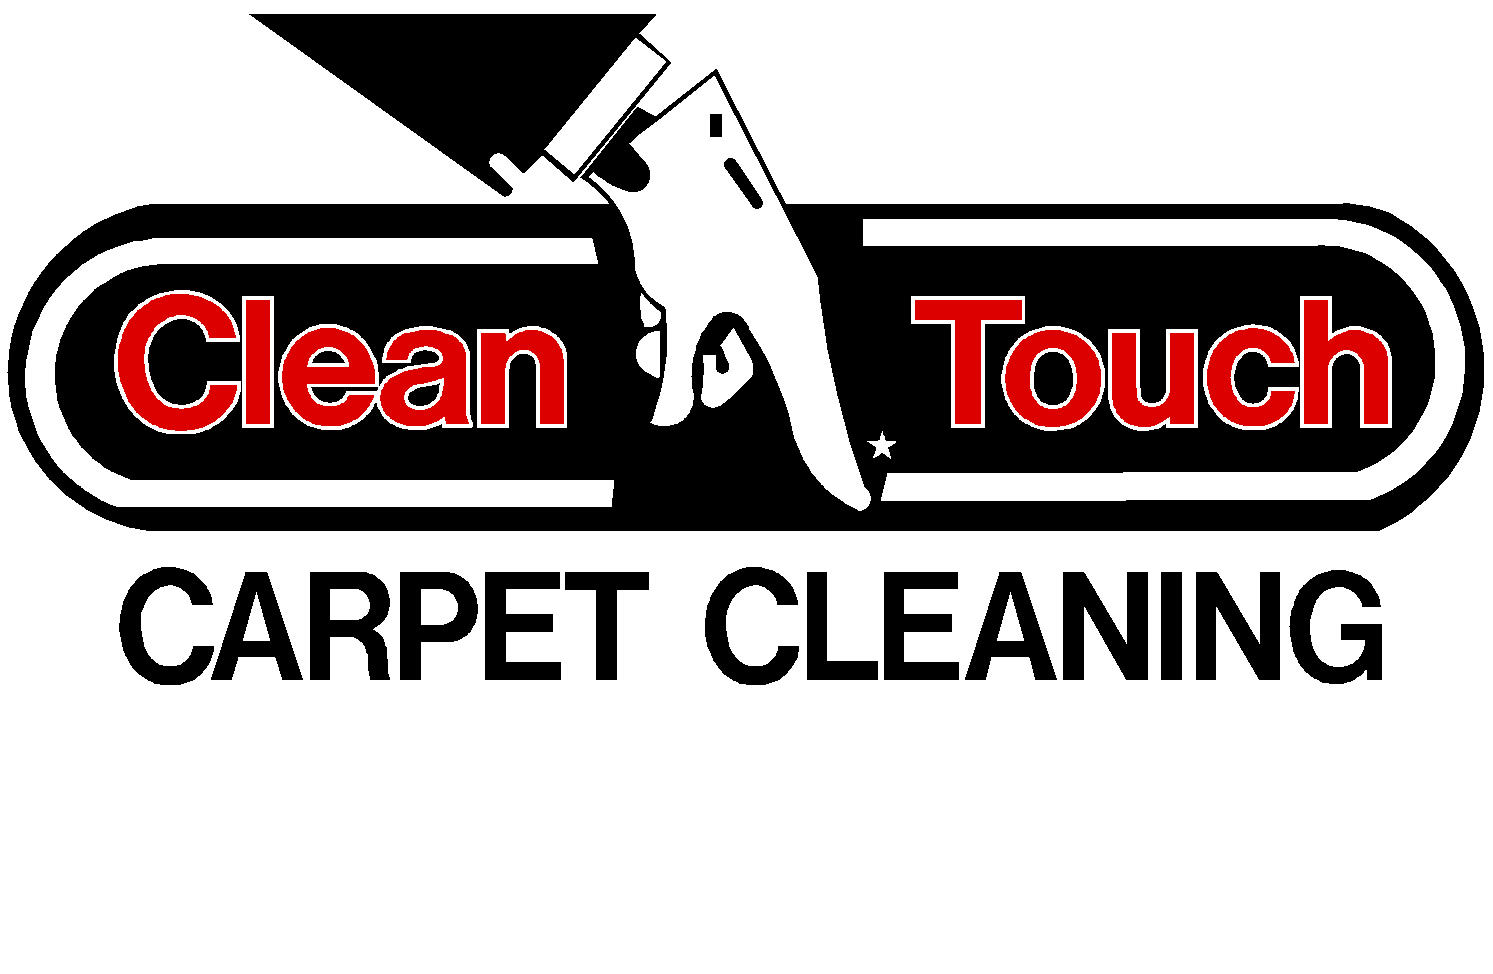 Clean Touch Carpet Cleaning 9800 Vesper Ave Unit 17 Panorama City Ca 91402 Yp